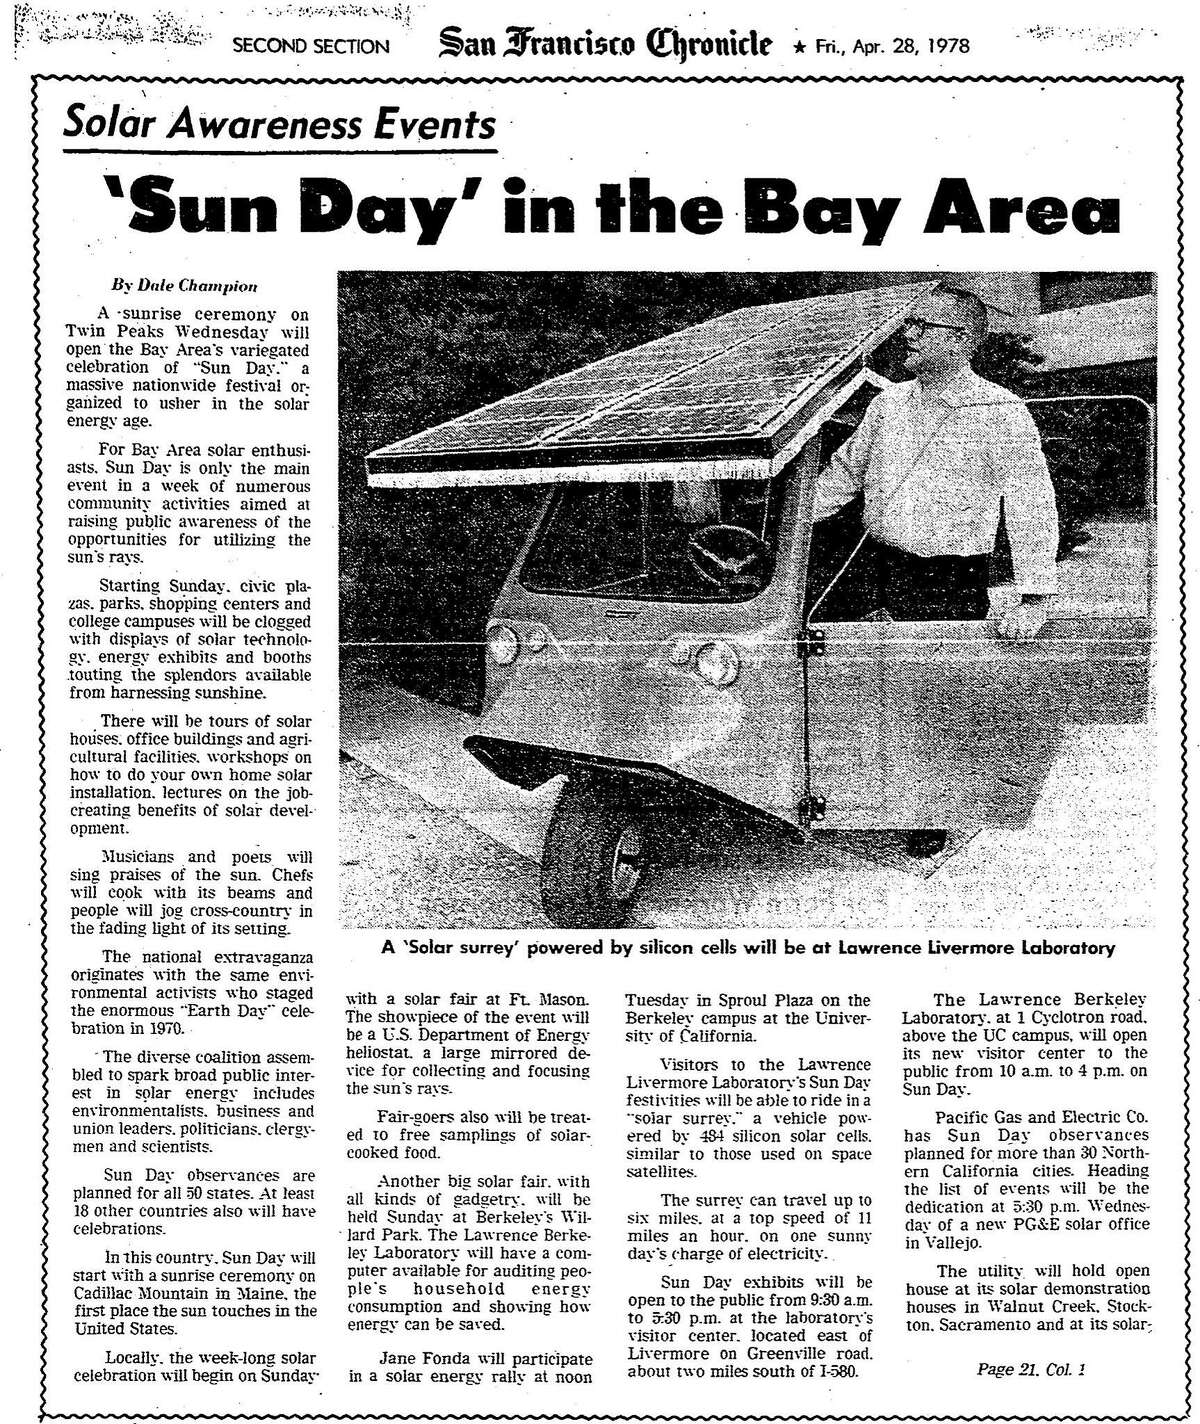 An April 28, 1978 Chronicle article on the upcoming Sun Day festivities. They included speakers and solar energy demonstrations